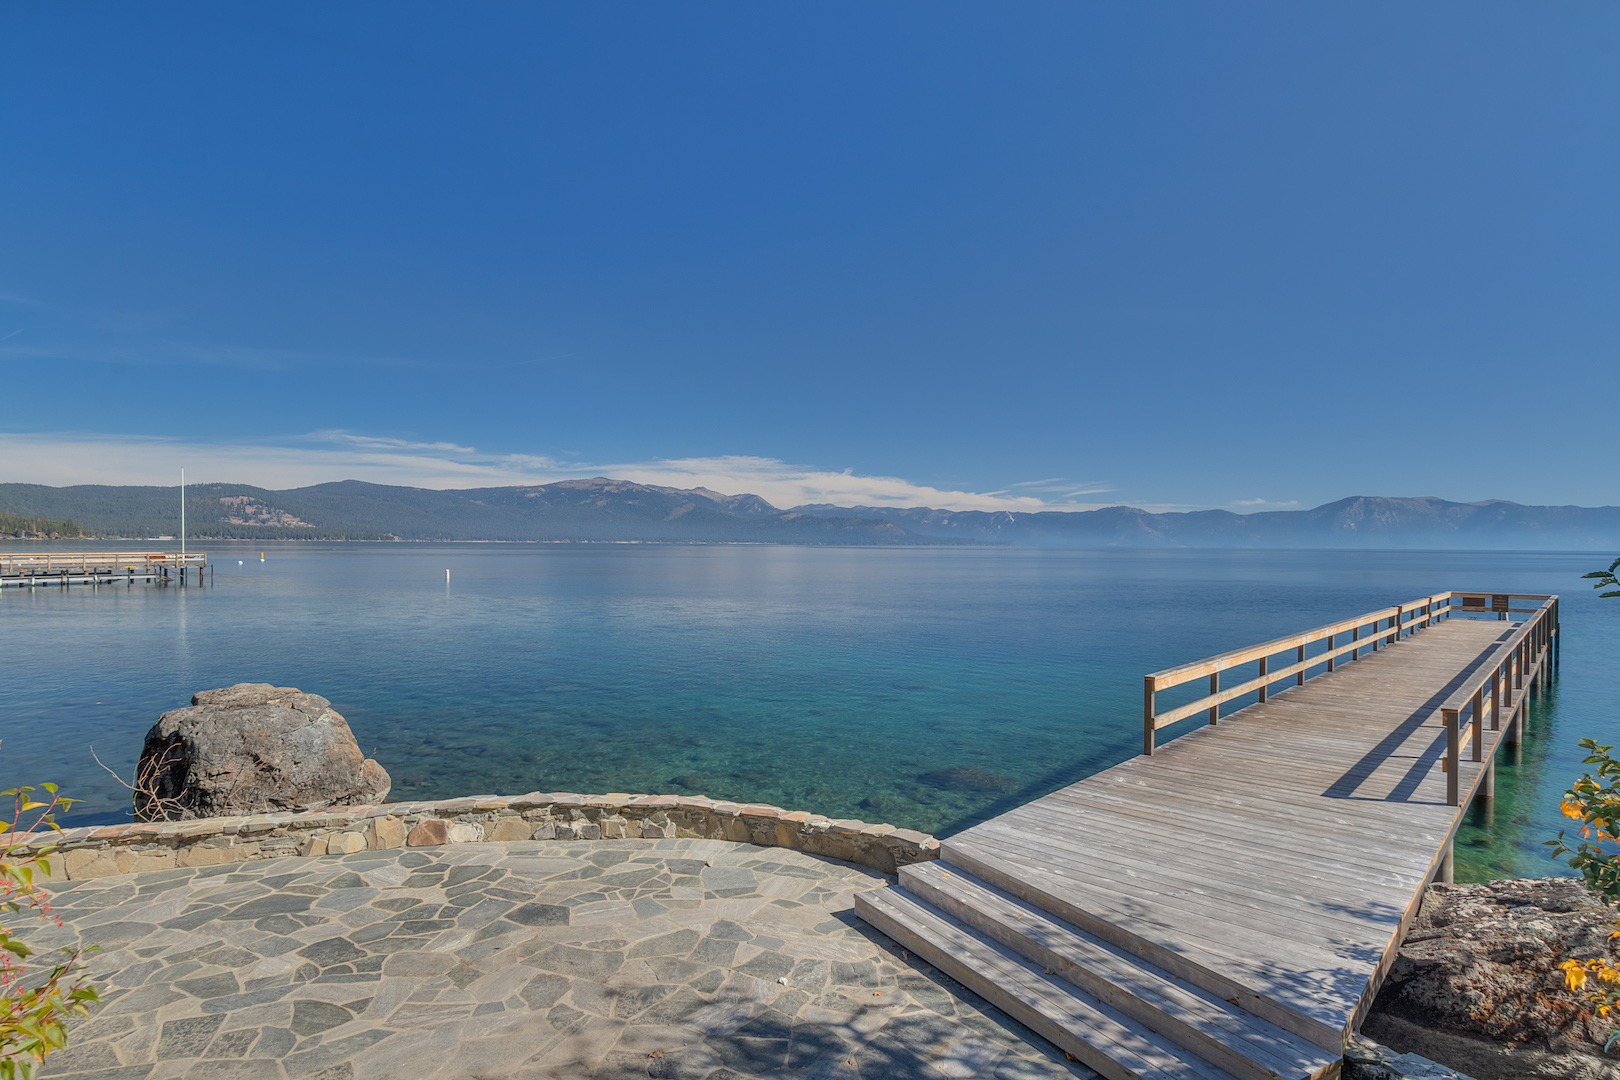 Lookout over Lake Tahoe on Chinquapin's piers